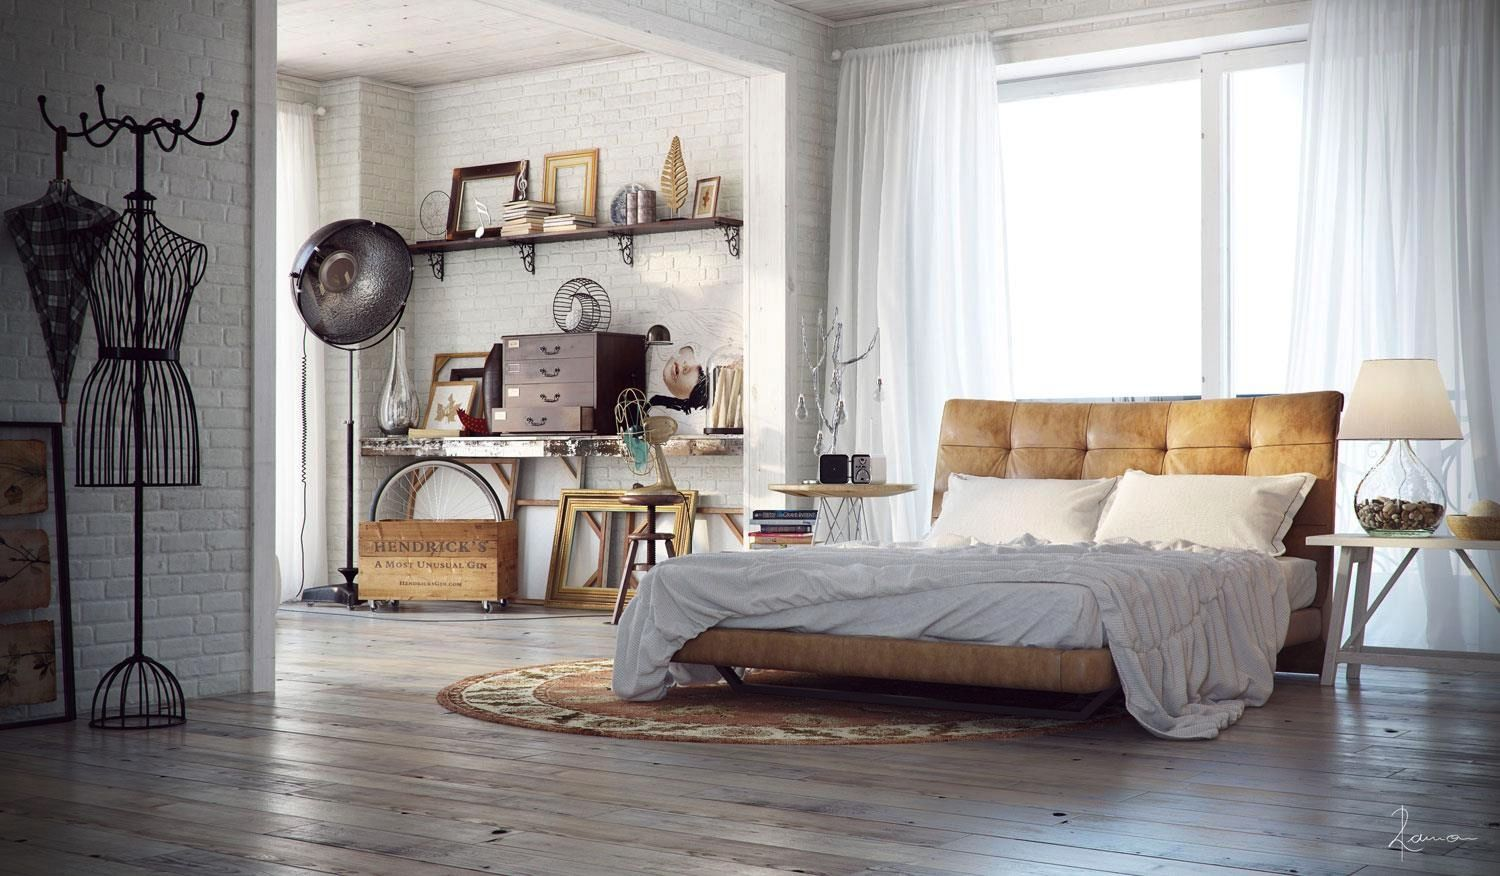 industrial style bedroom furniture. Check Out 20 Industrial Bedroom Designs. Design Is An Urban Signature That Combines Simplicity And Authenticity. Style Furniture